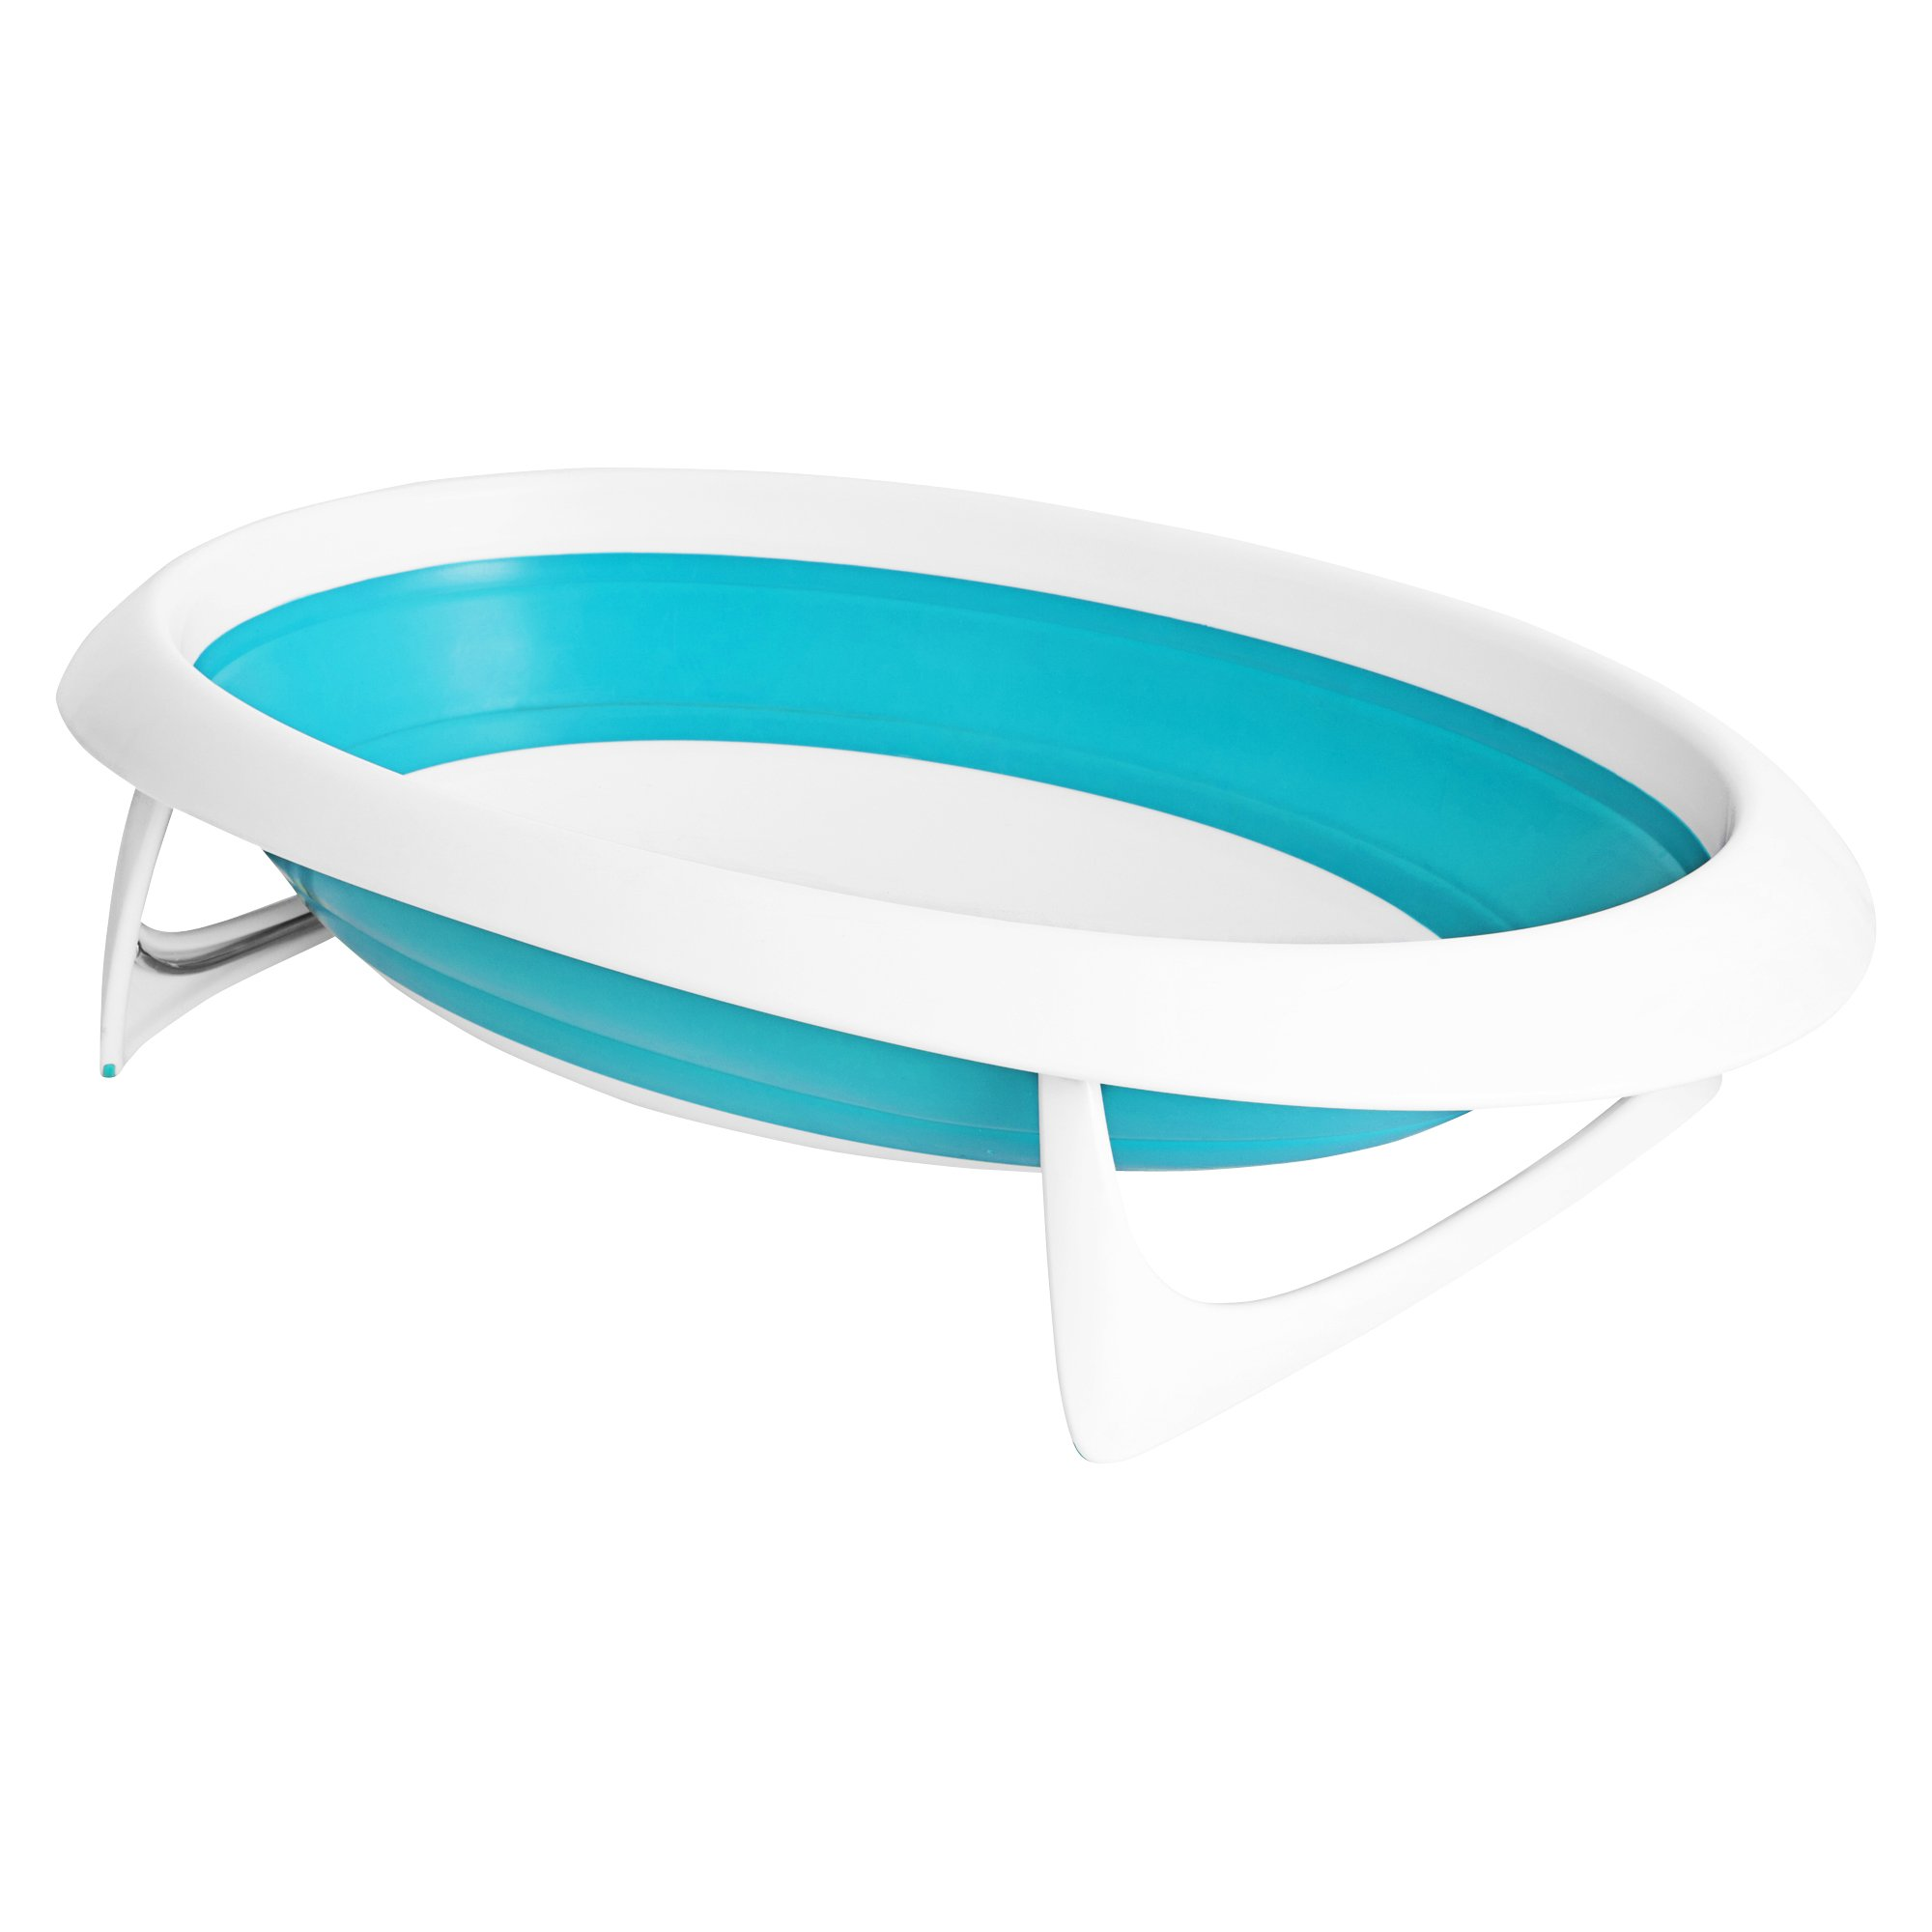 Boon Naked Collapsible Baby Bathtub Blue,Blue/White by Boon (Image #1)